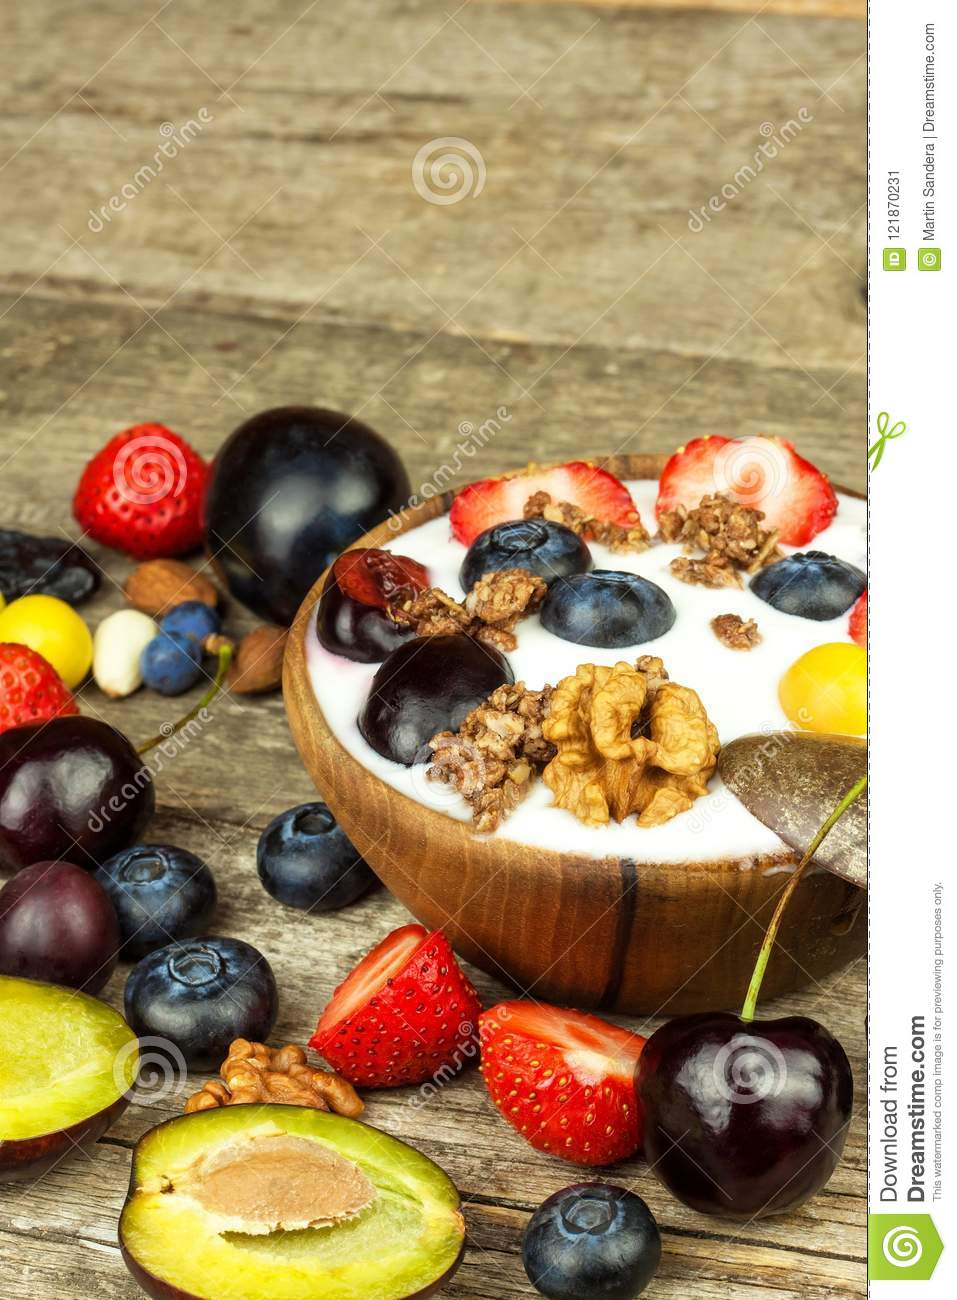 Yogurt with summer fruit on an old wooden table. Fruit refreshment. Snack for children.